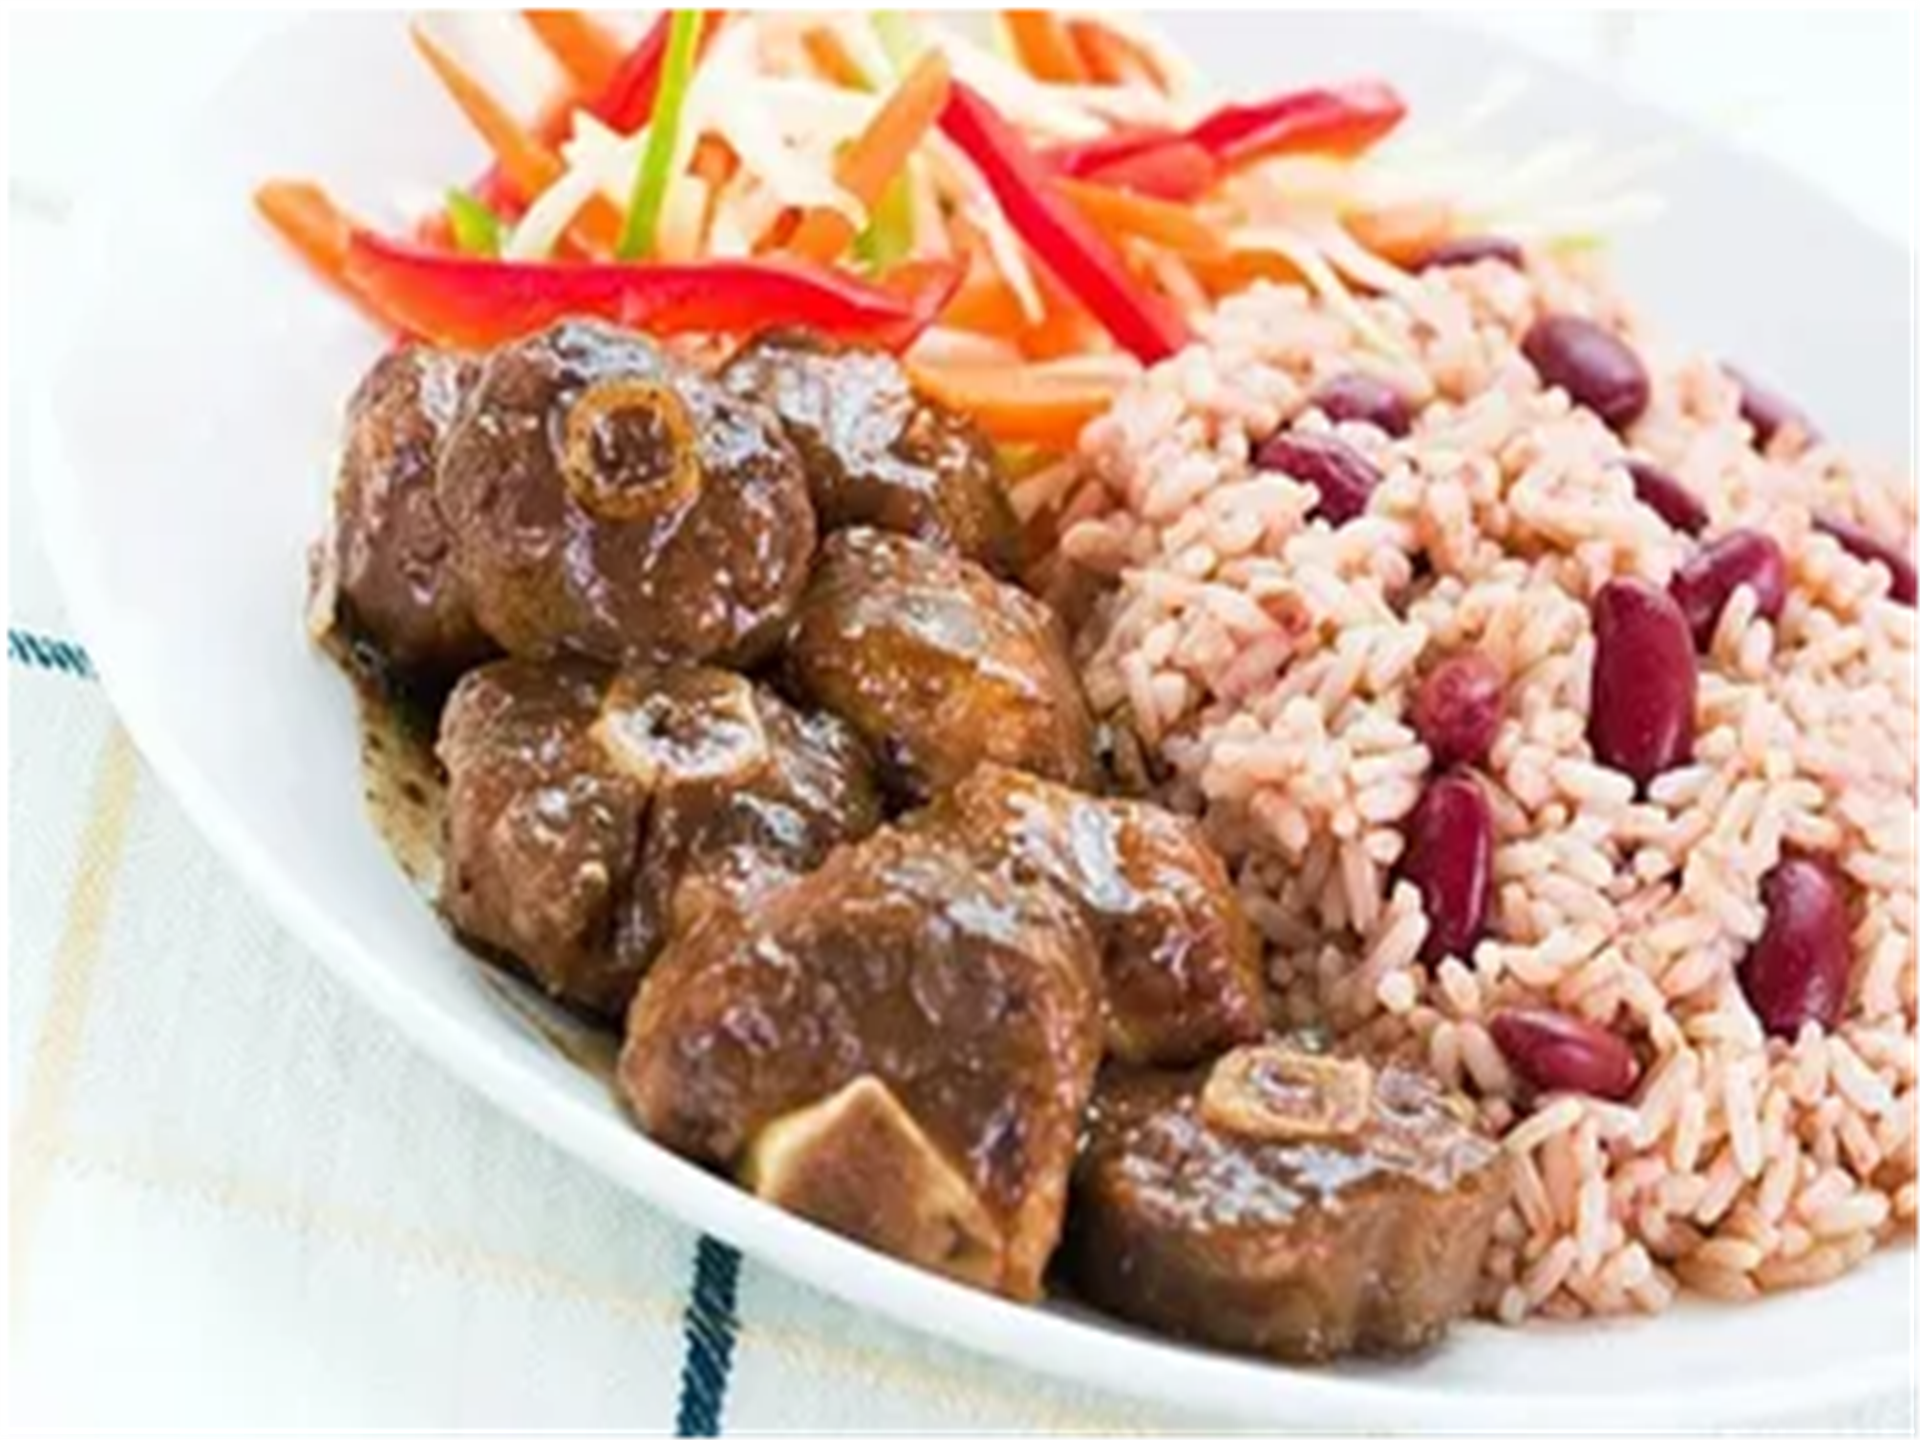 oxtail with rice, vegetables and beans